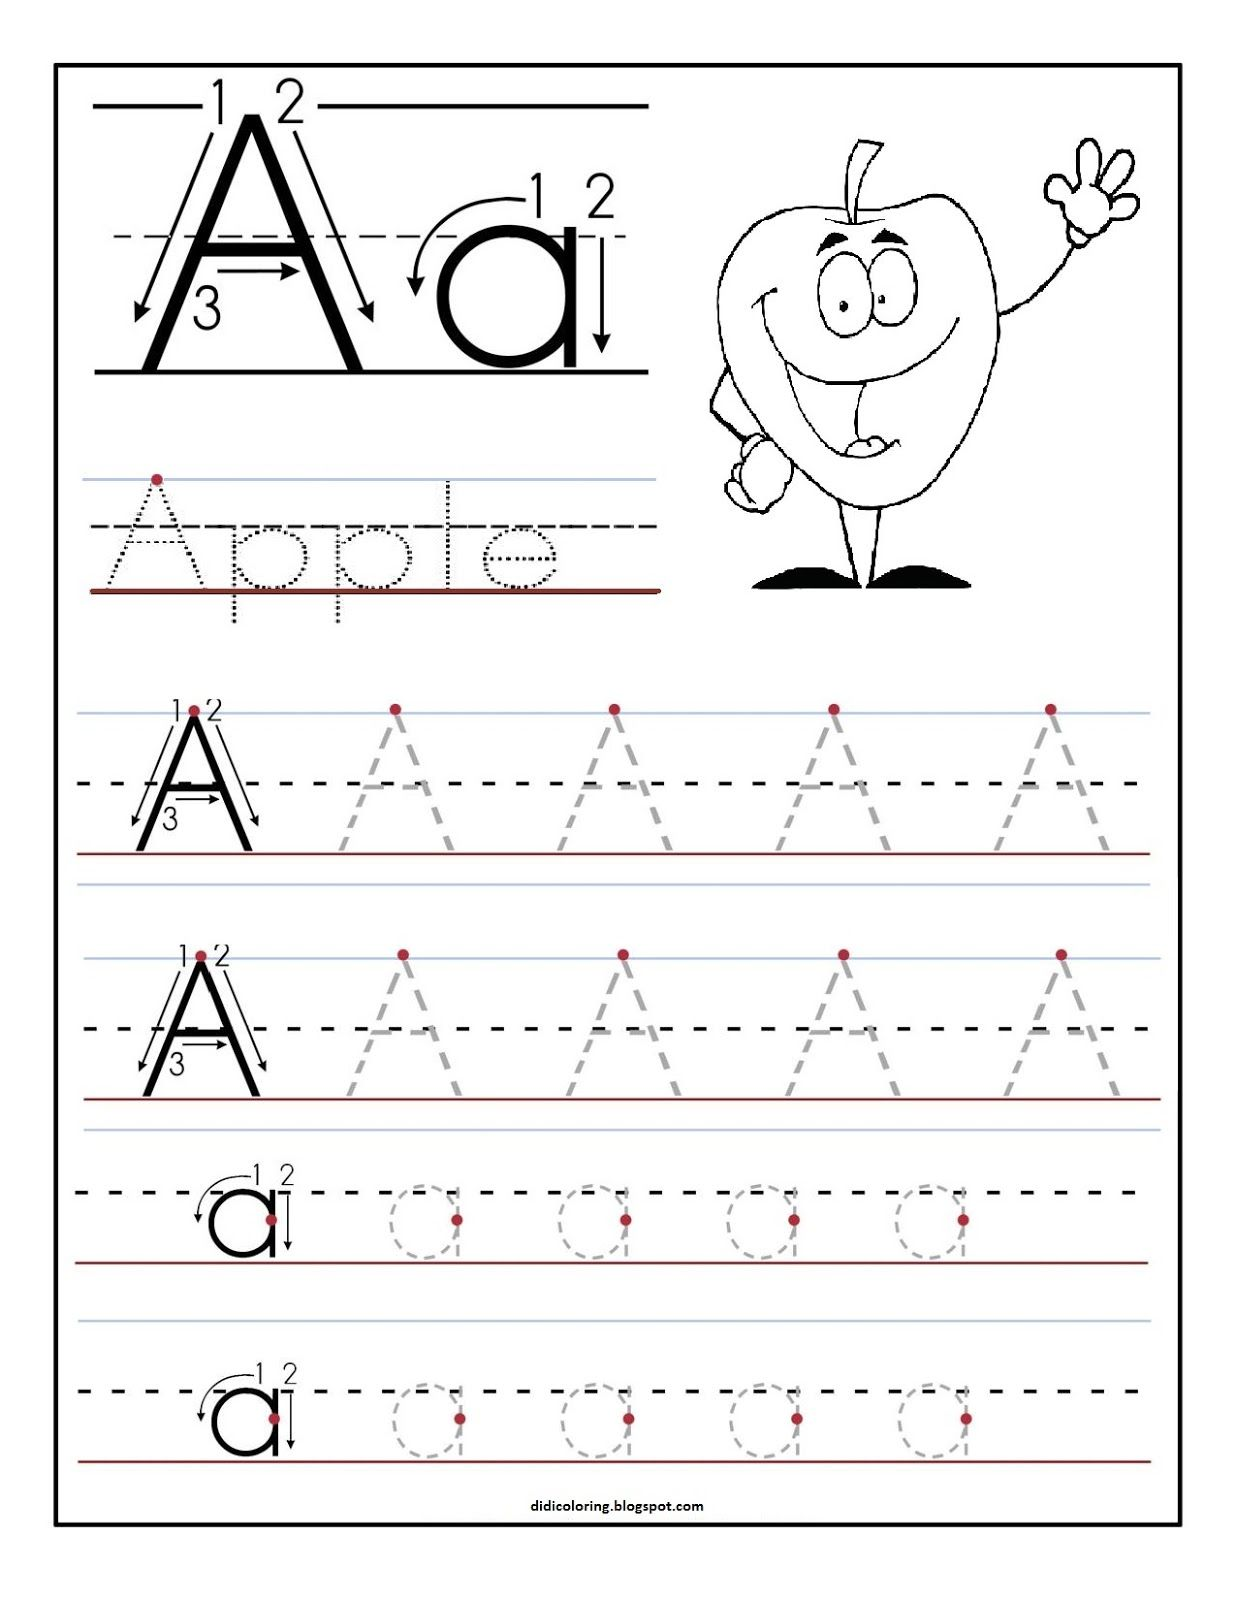 Worksheets Free Printable Letter Recognition Worksheets free printable worksheet letter a for your child to learn and write didi coloring page